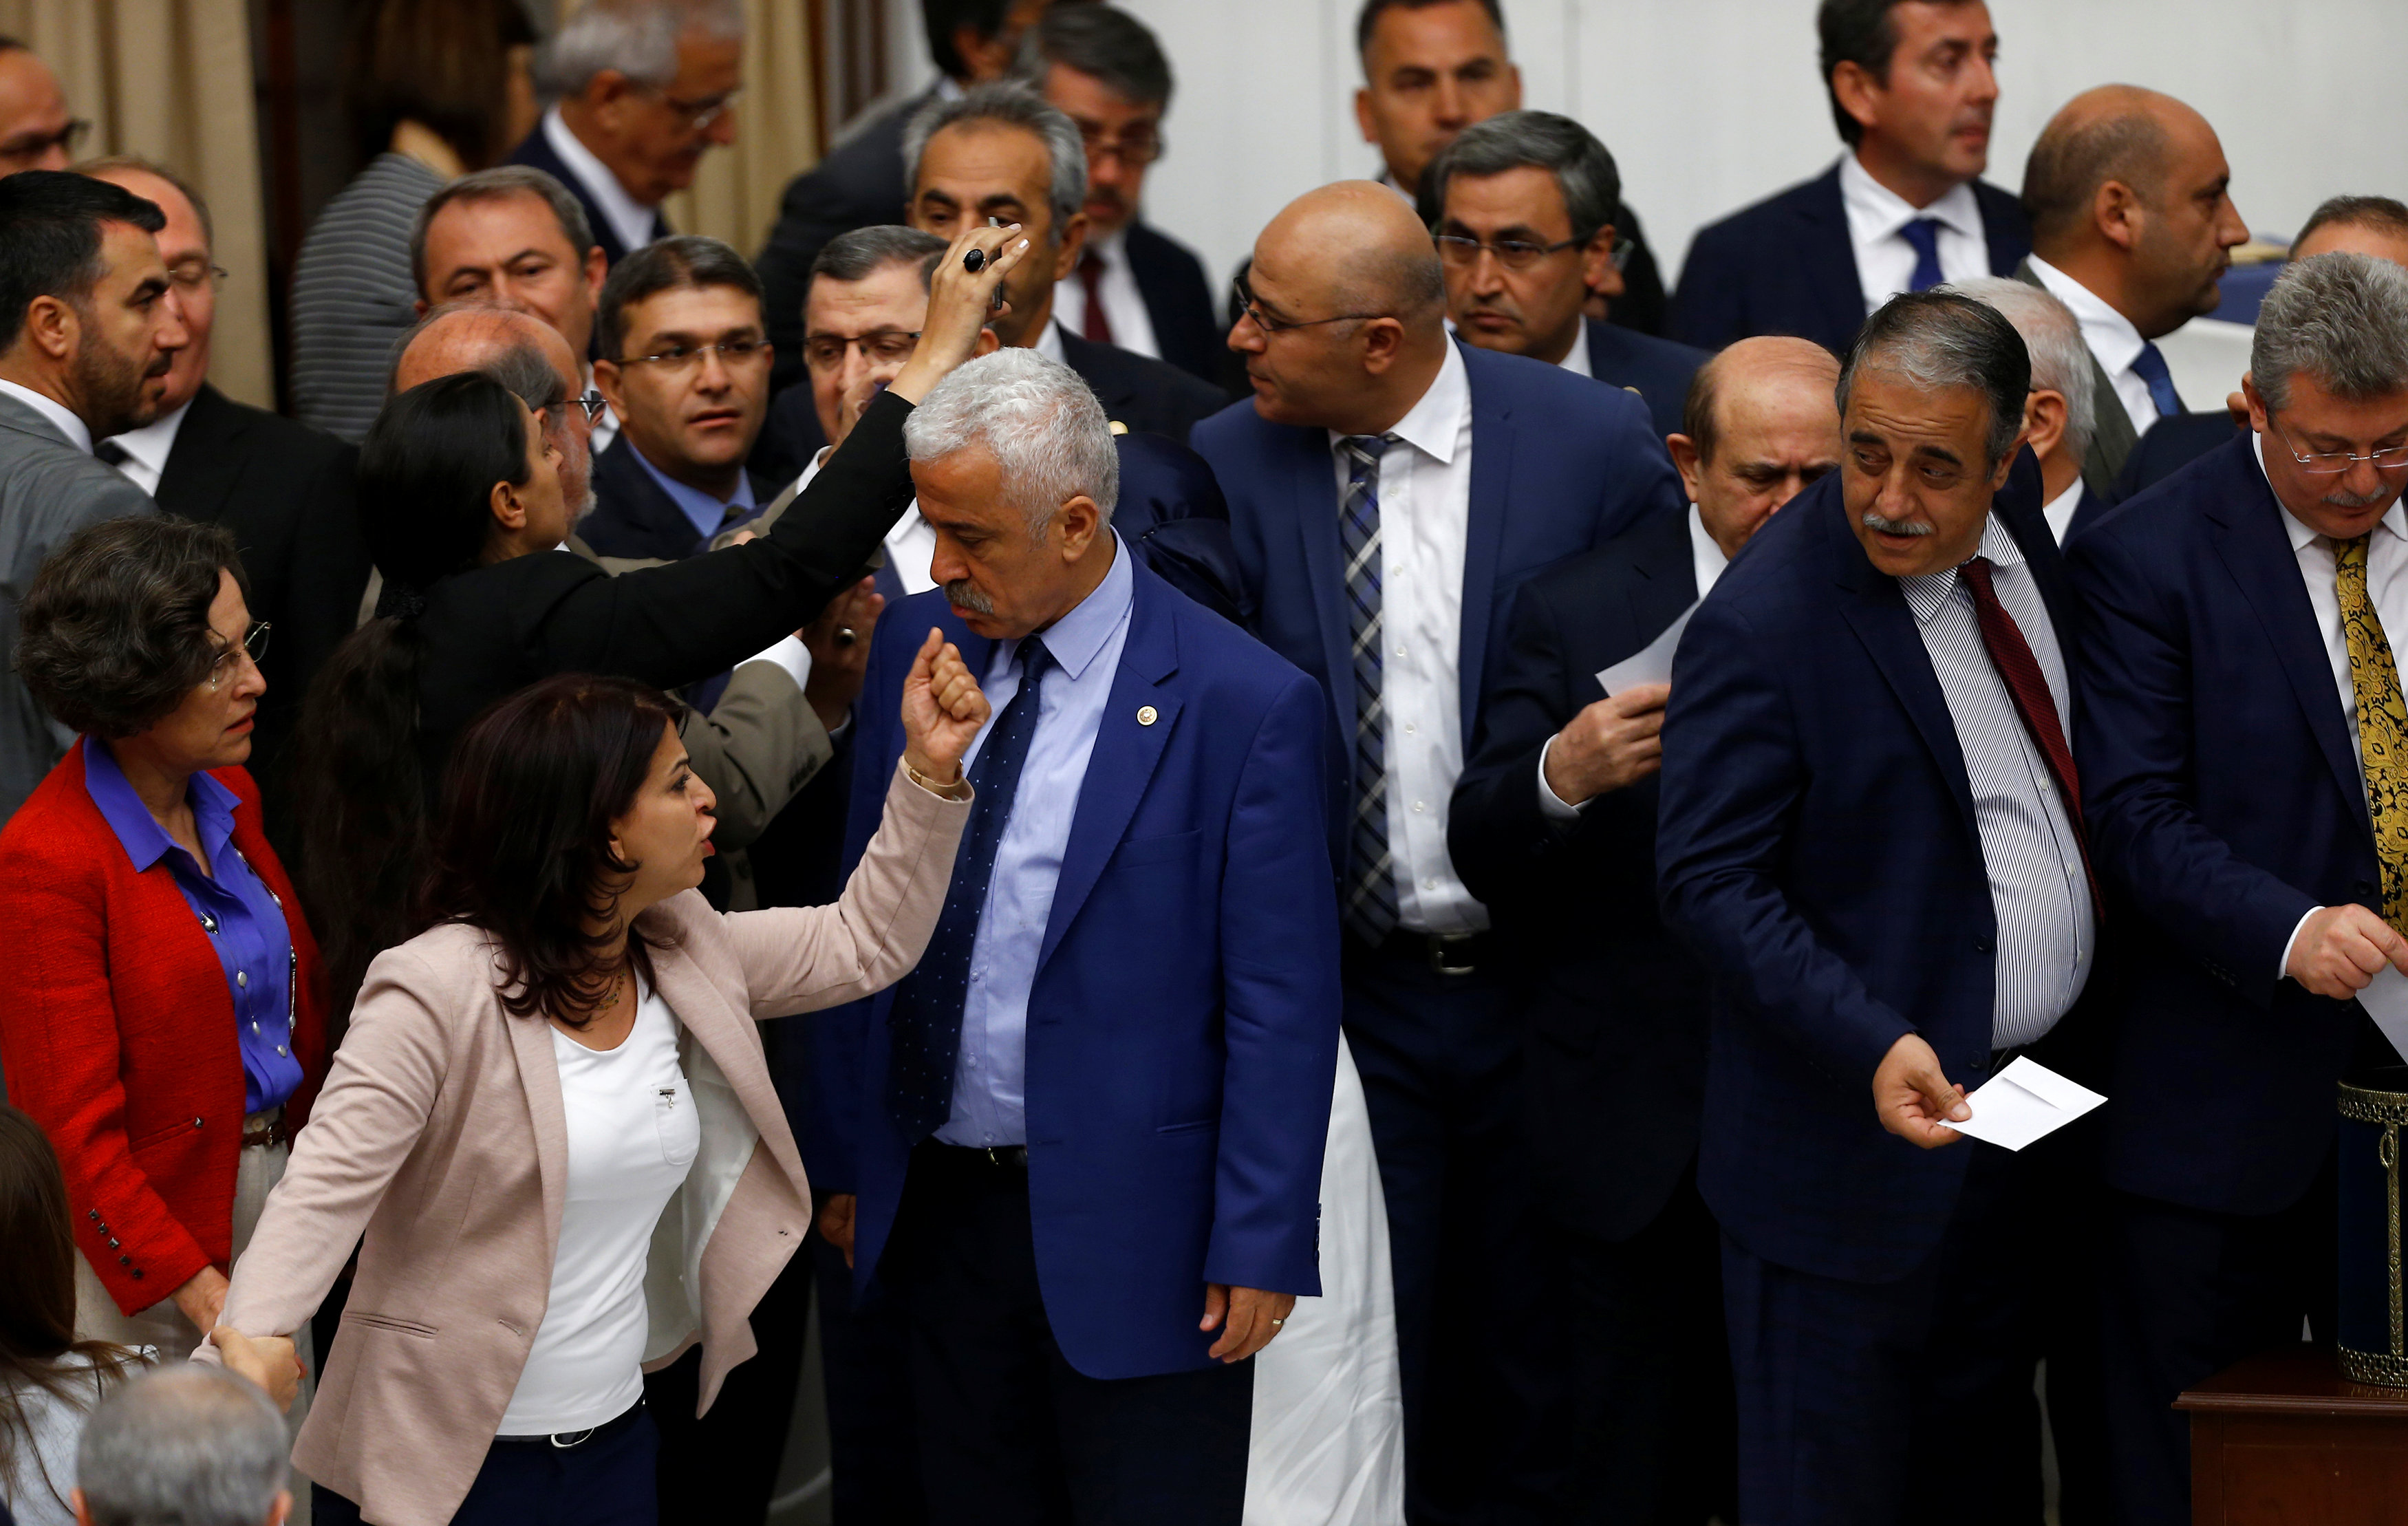 Pro-Kurdish opposition Peoples' Democratic Party (HDP) MPs react to Turkey's ruling AK Party (AKP) as they vote in favor of an article of constitutional change that could see pro-Kurdish and other lawmakers prosecuted at the Turkish parliament in Ankara, Turkey, May 20, 2016.